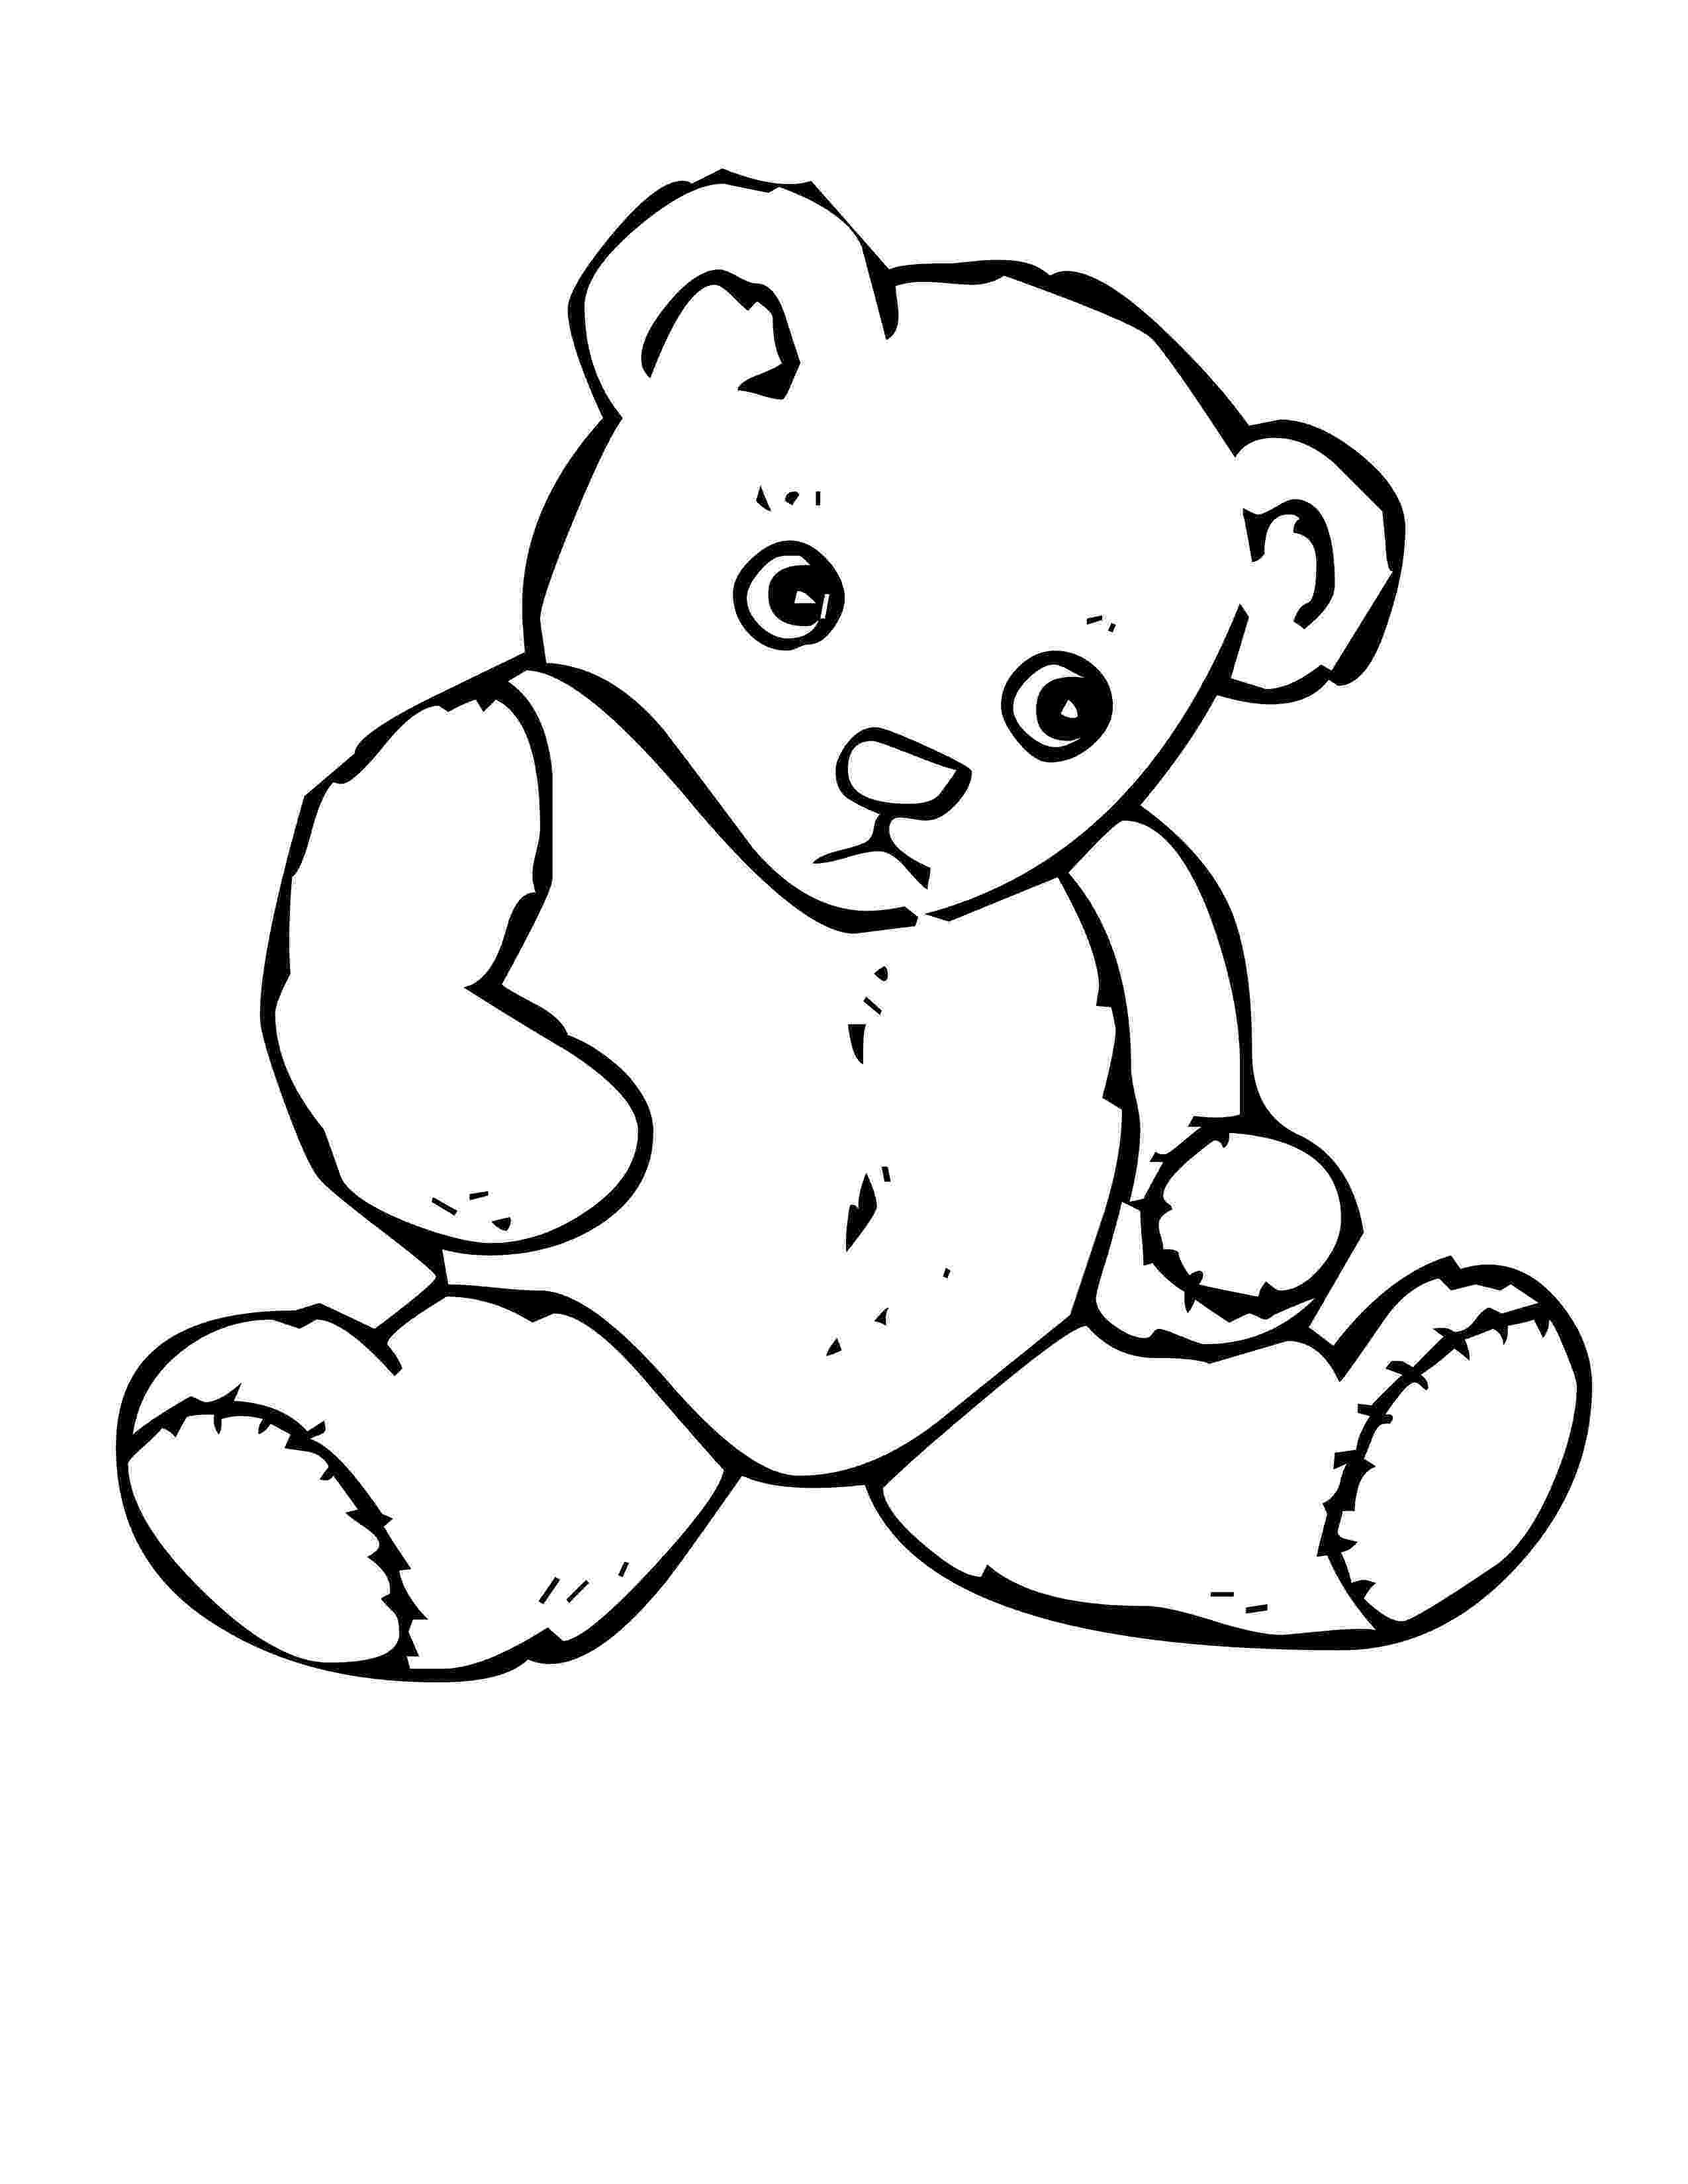 bear pictures to color top 10 free printable bear coloring pages online bear pictures to color